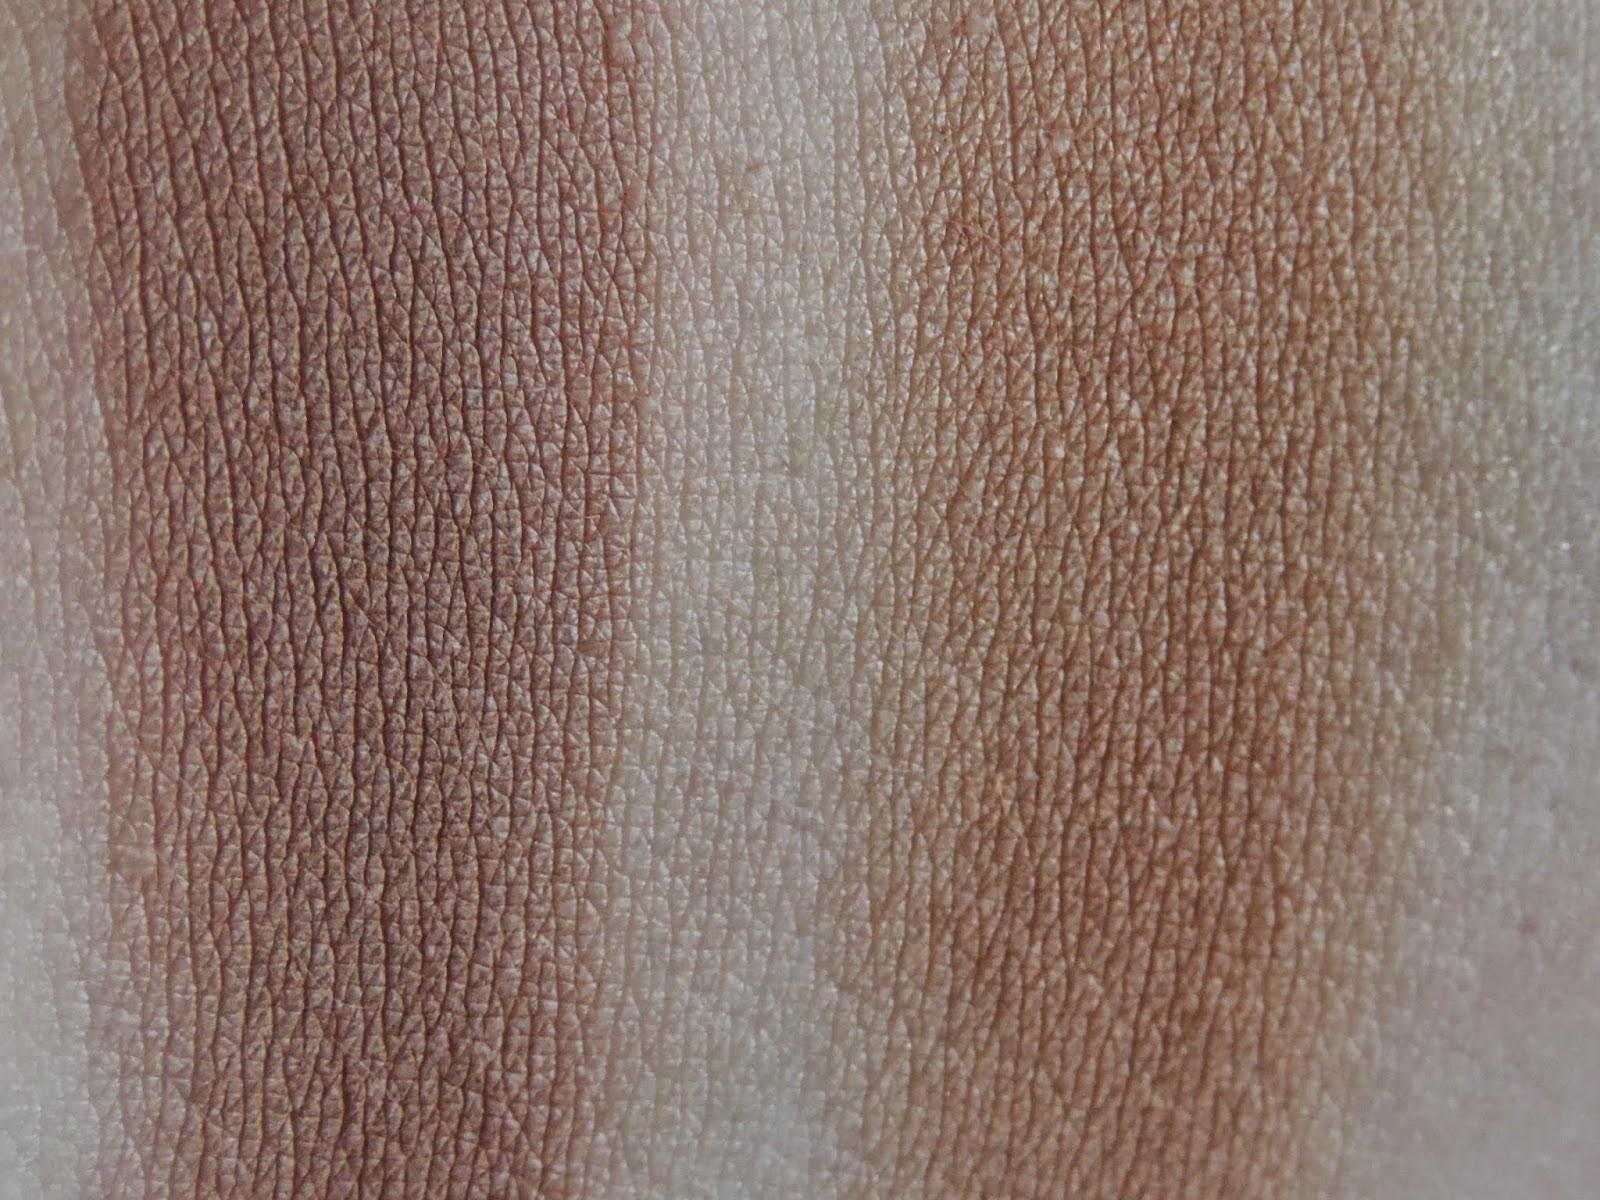 Swatches: Bobbi Brown Bronzing Powder in Natural, Dior Skin Nude Bronzer in Amber